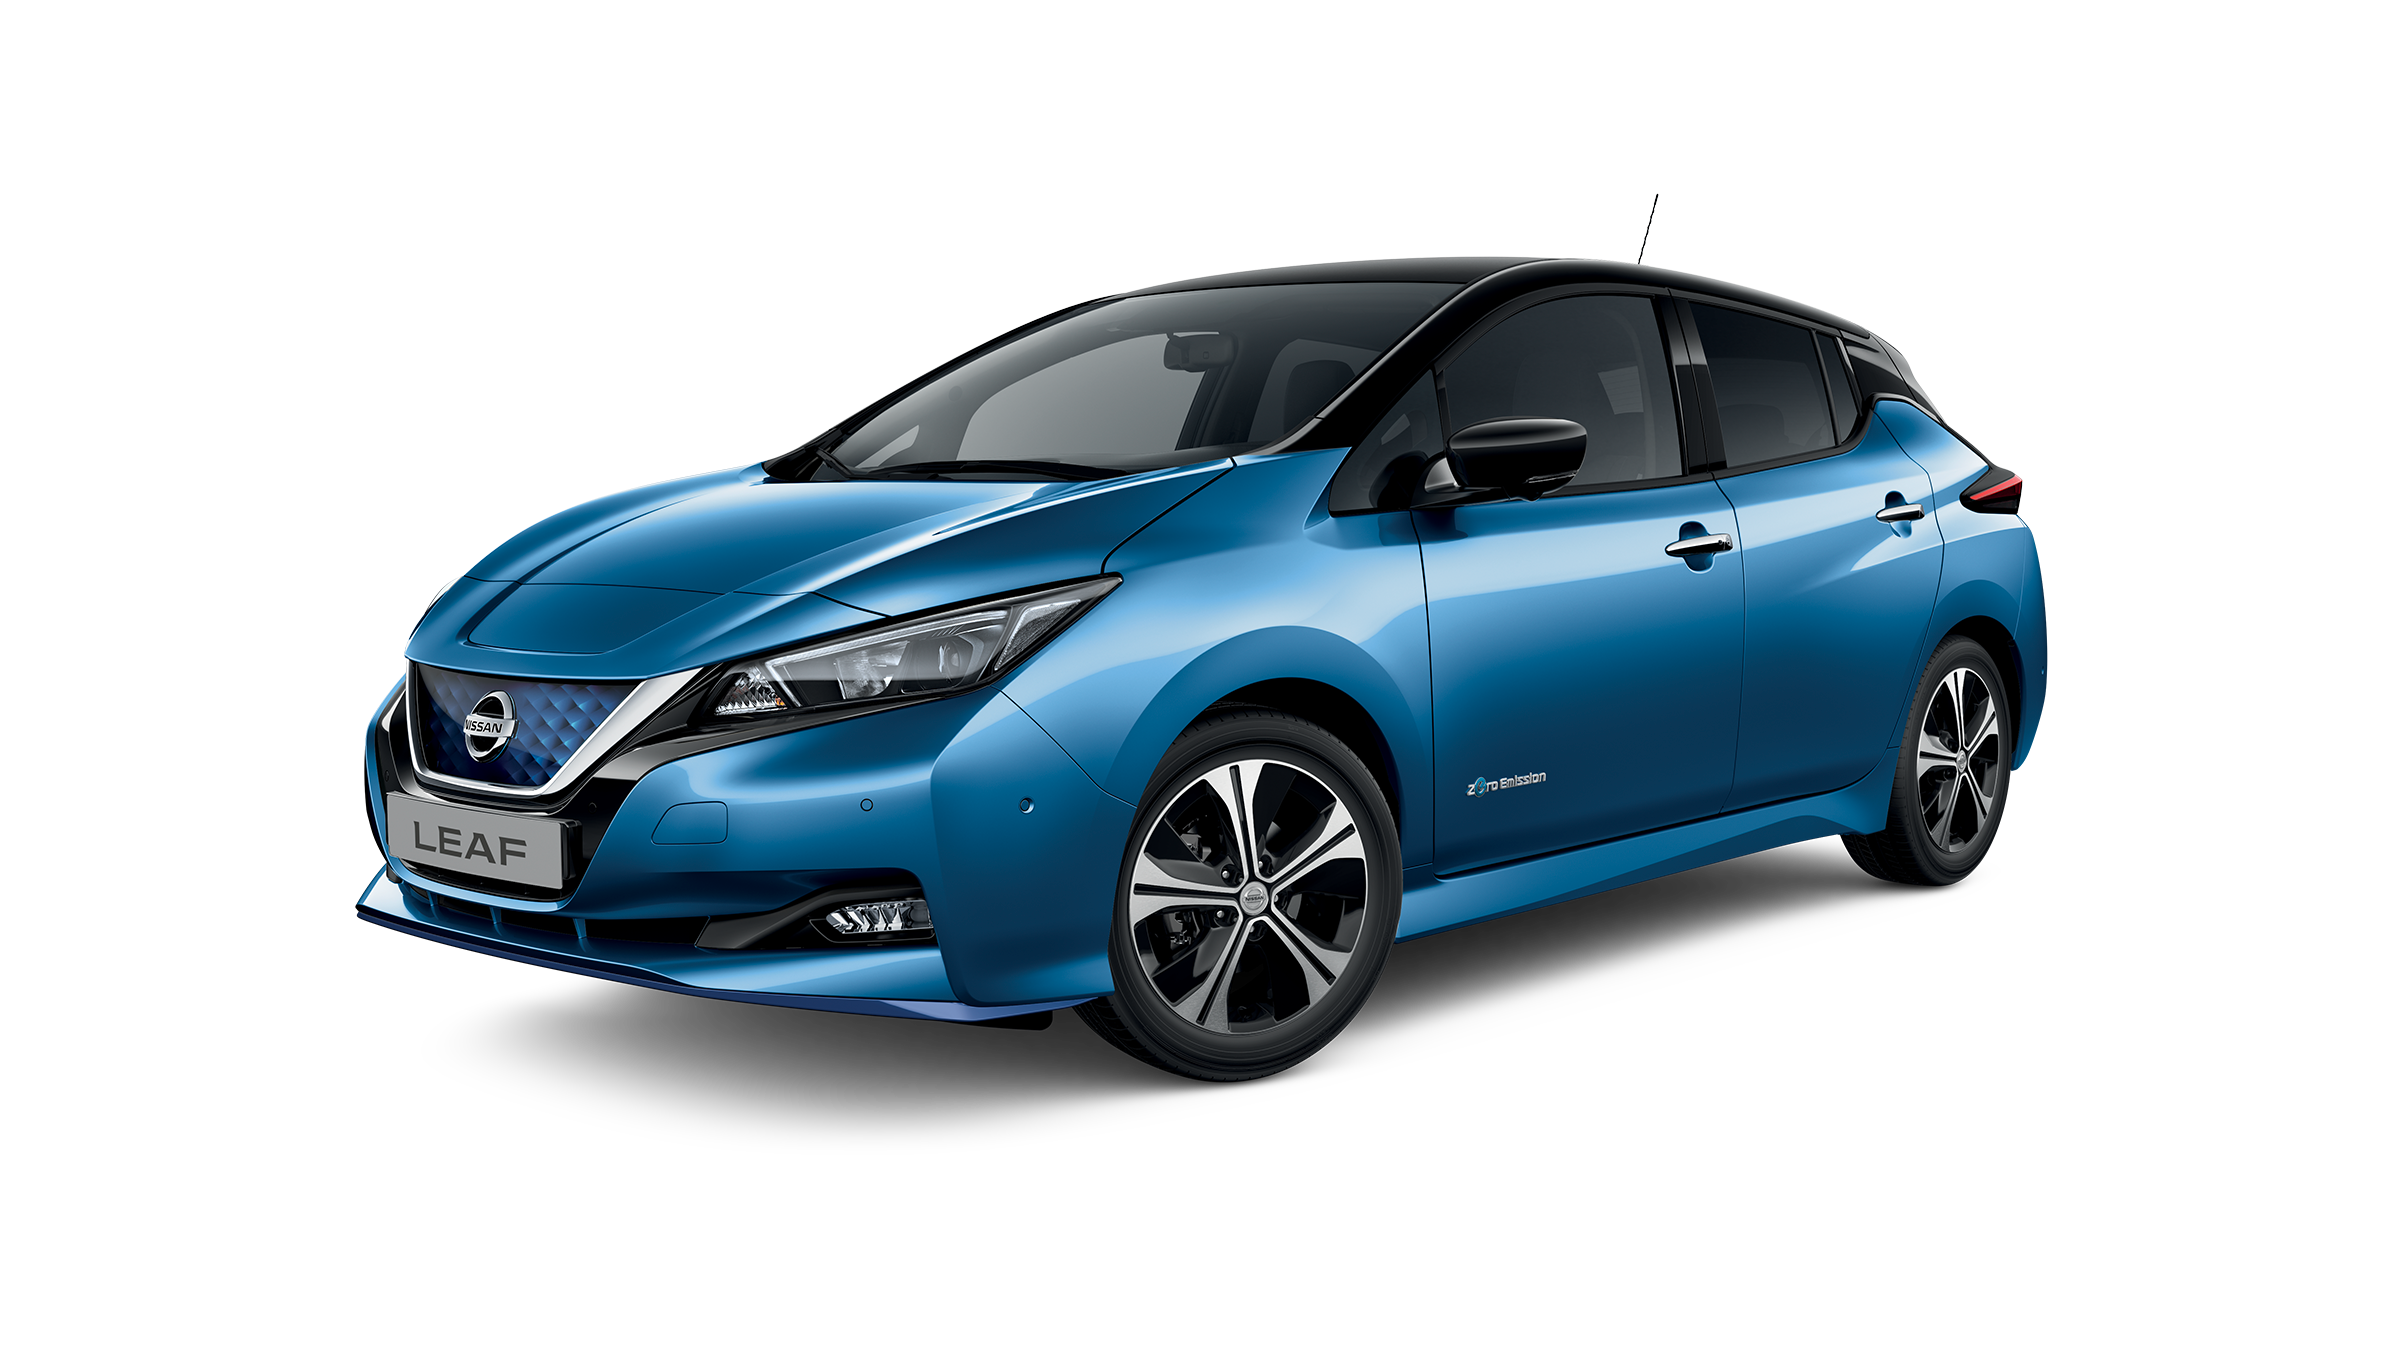 38 The Best Nissan Leaf 2019 60 Kwh Images